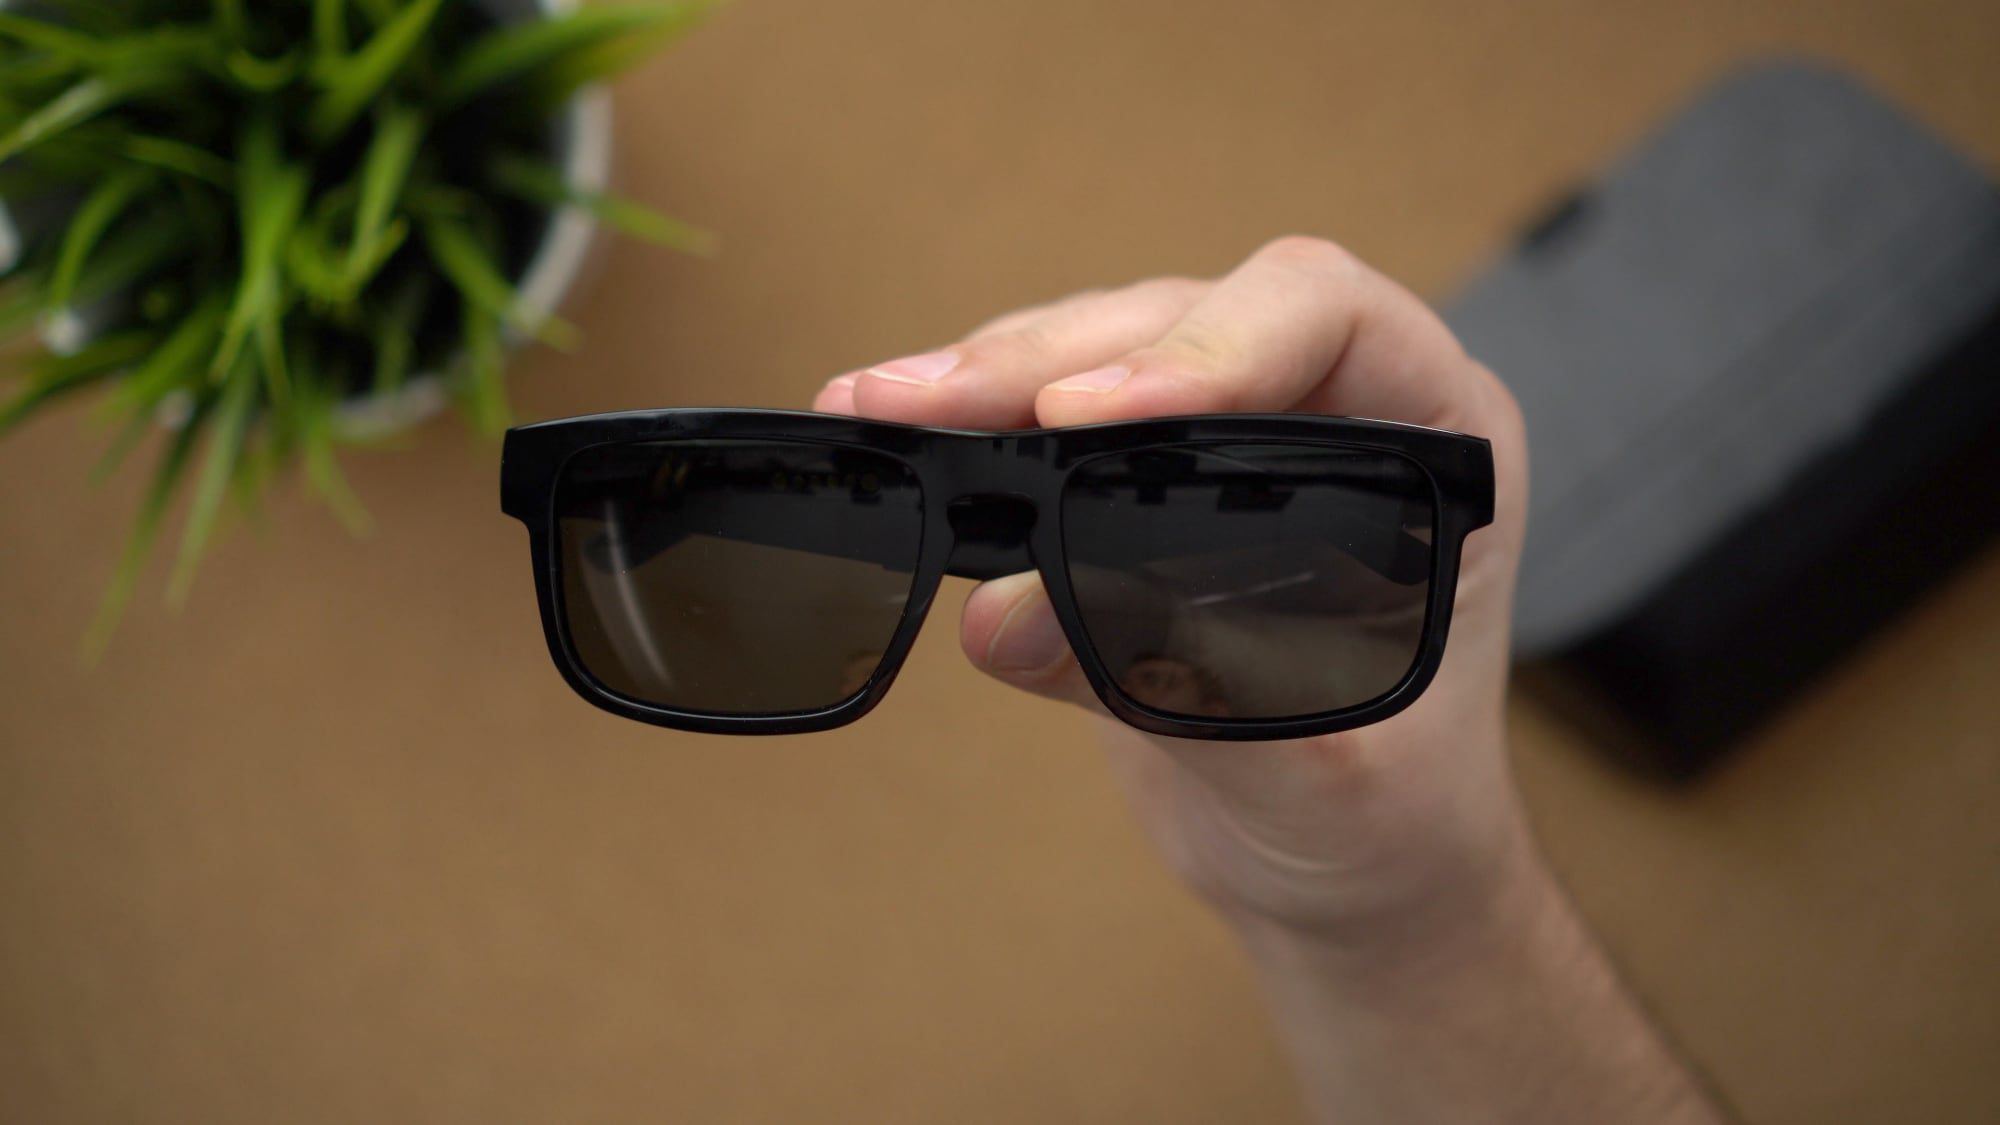 photo of Hands-On With Bose's 'Tenor' Audio Sunglasses image